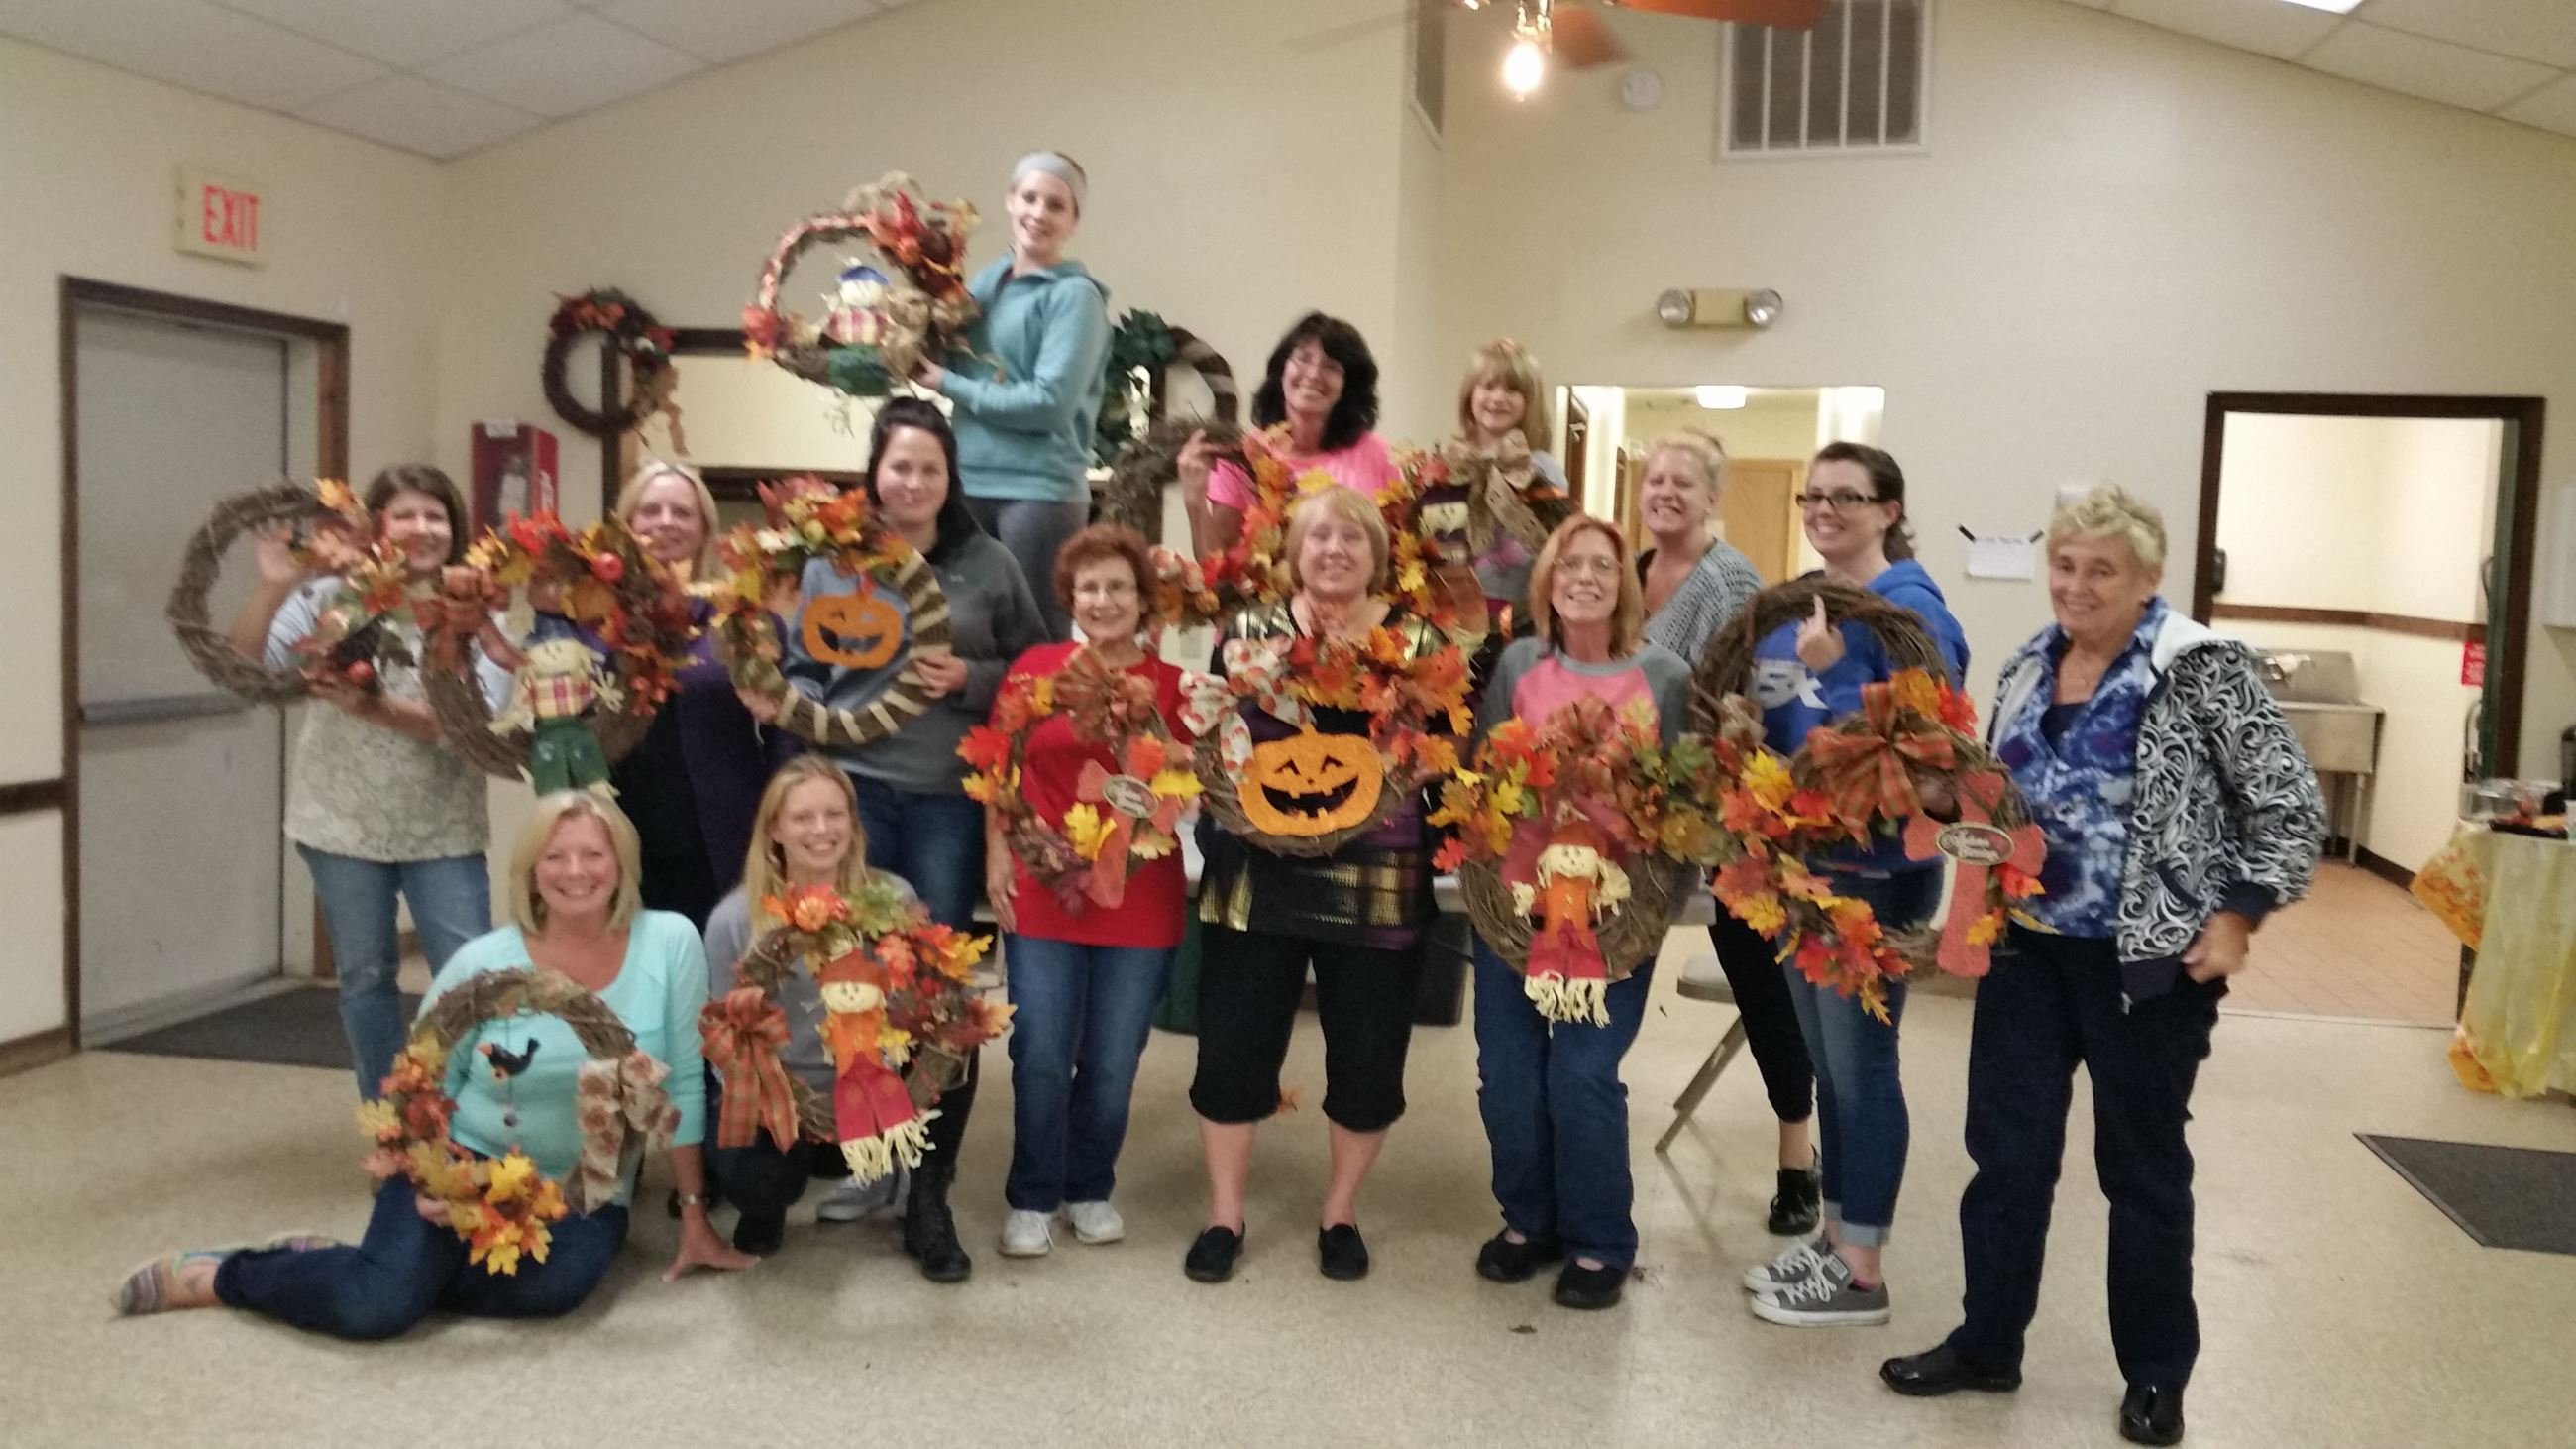 Wreath making oct 1 2015.jpg 2